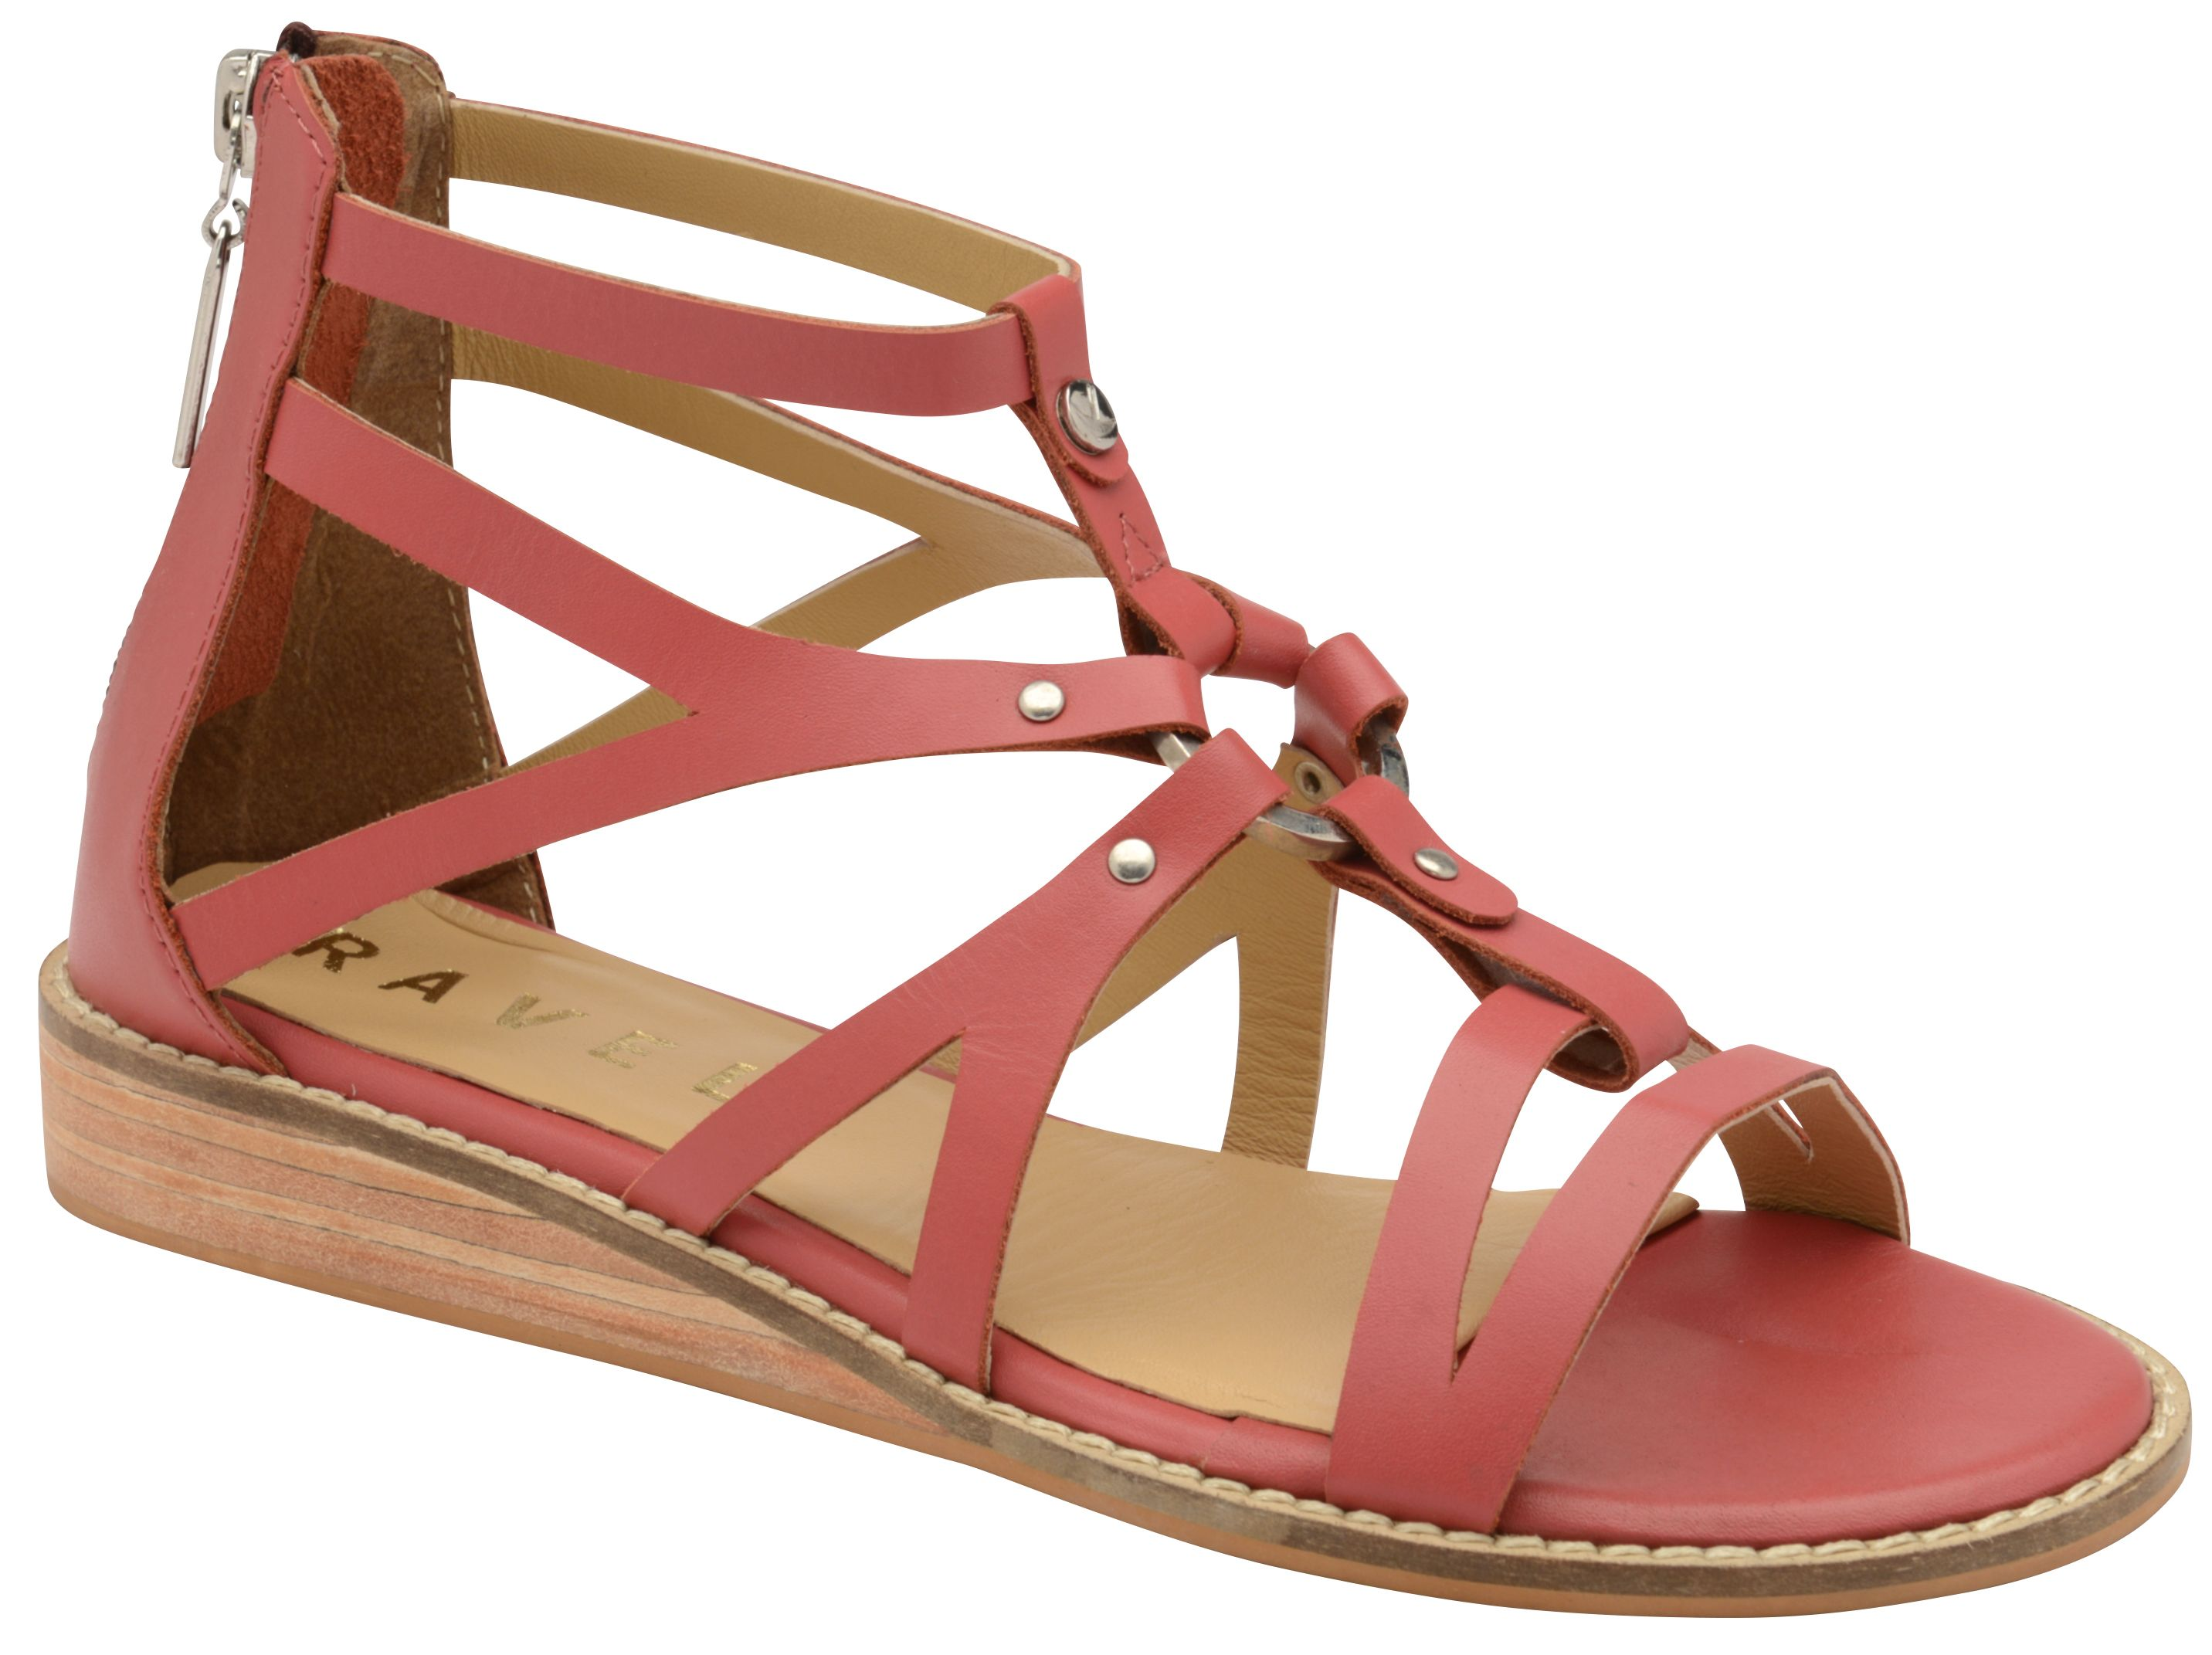 Ravel Minto Strappy Sandals, Rose